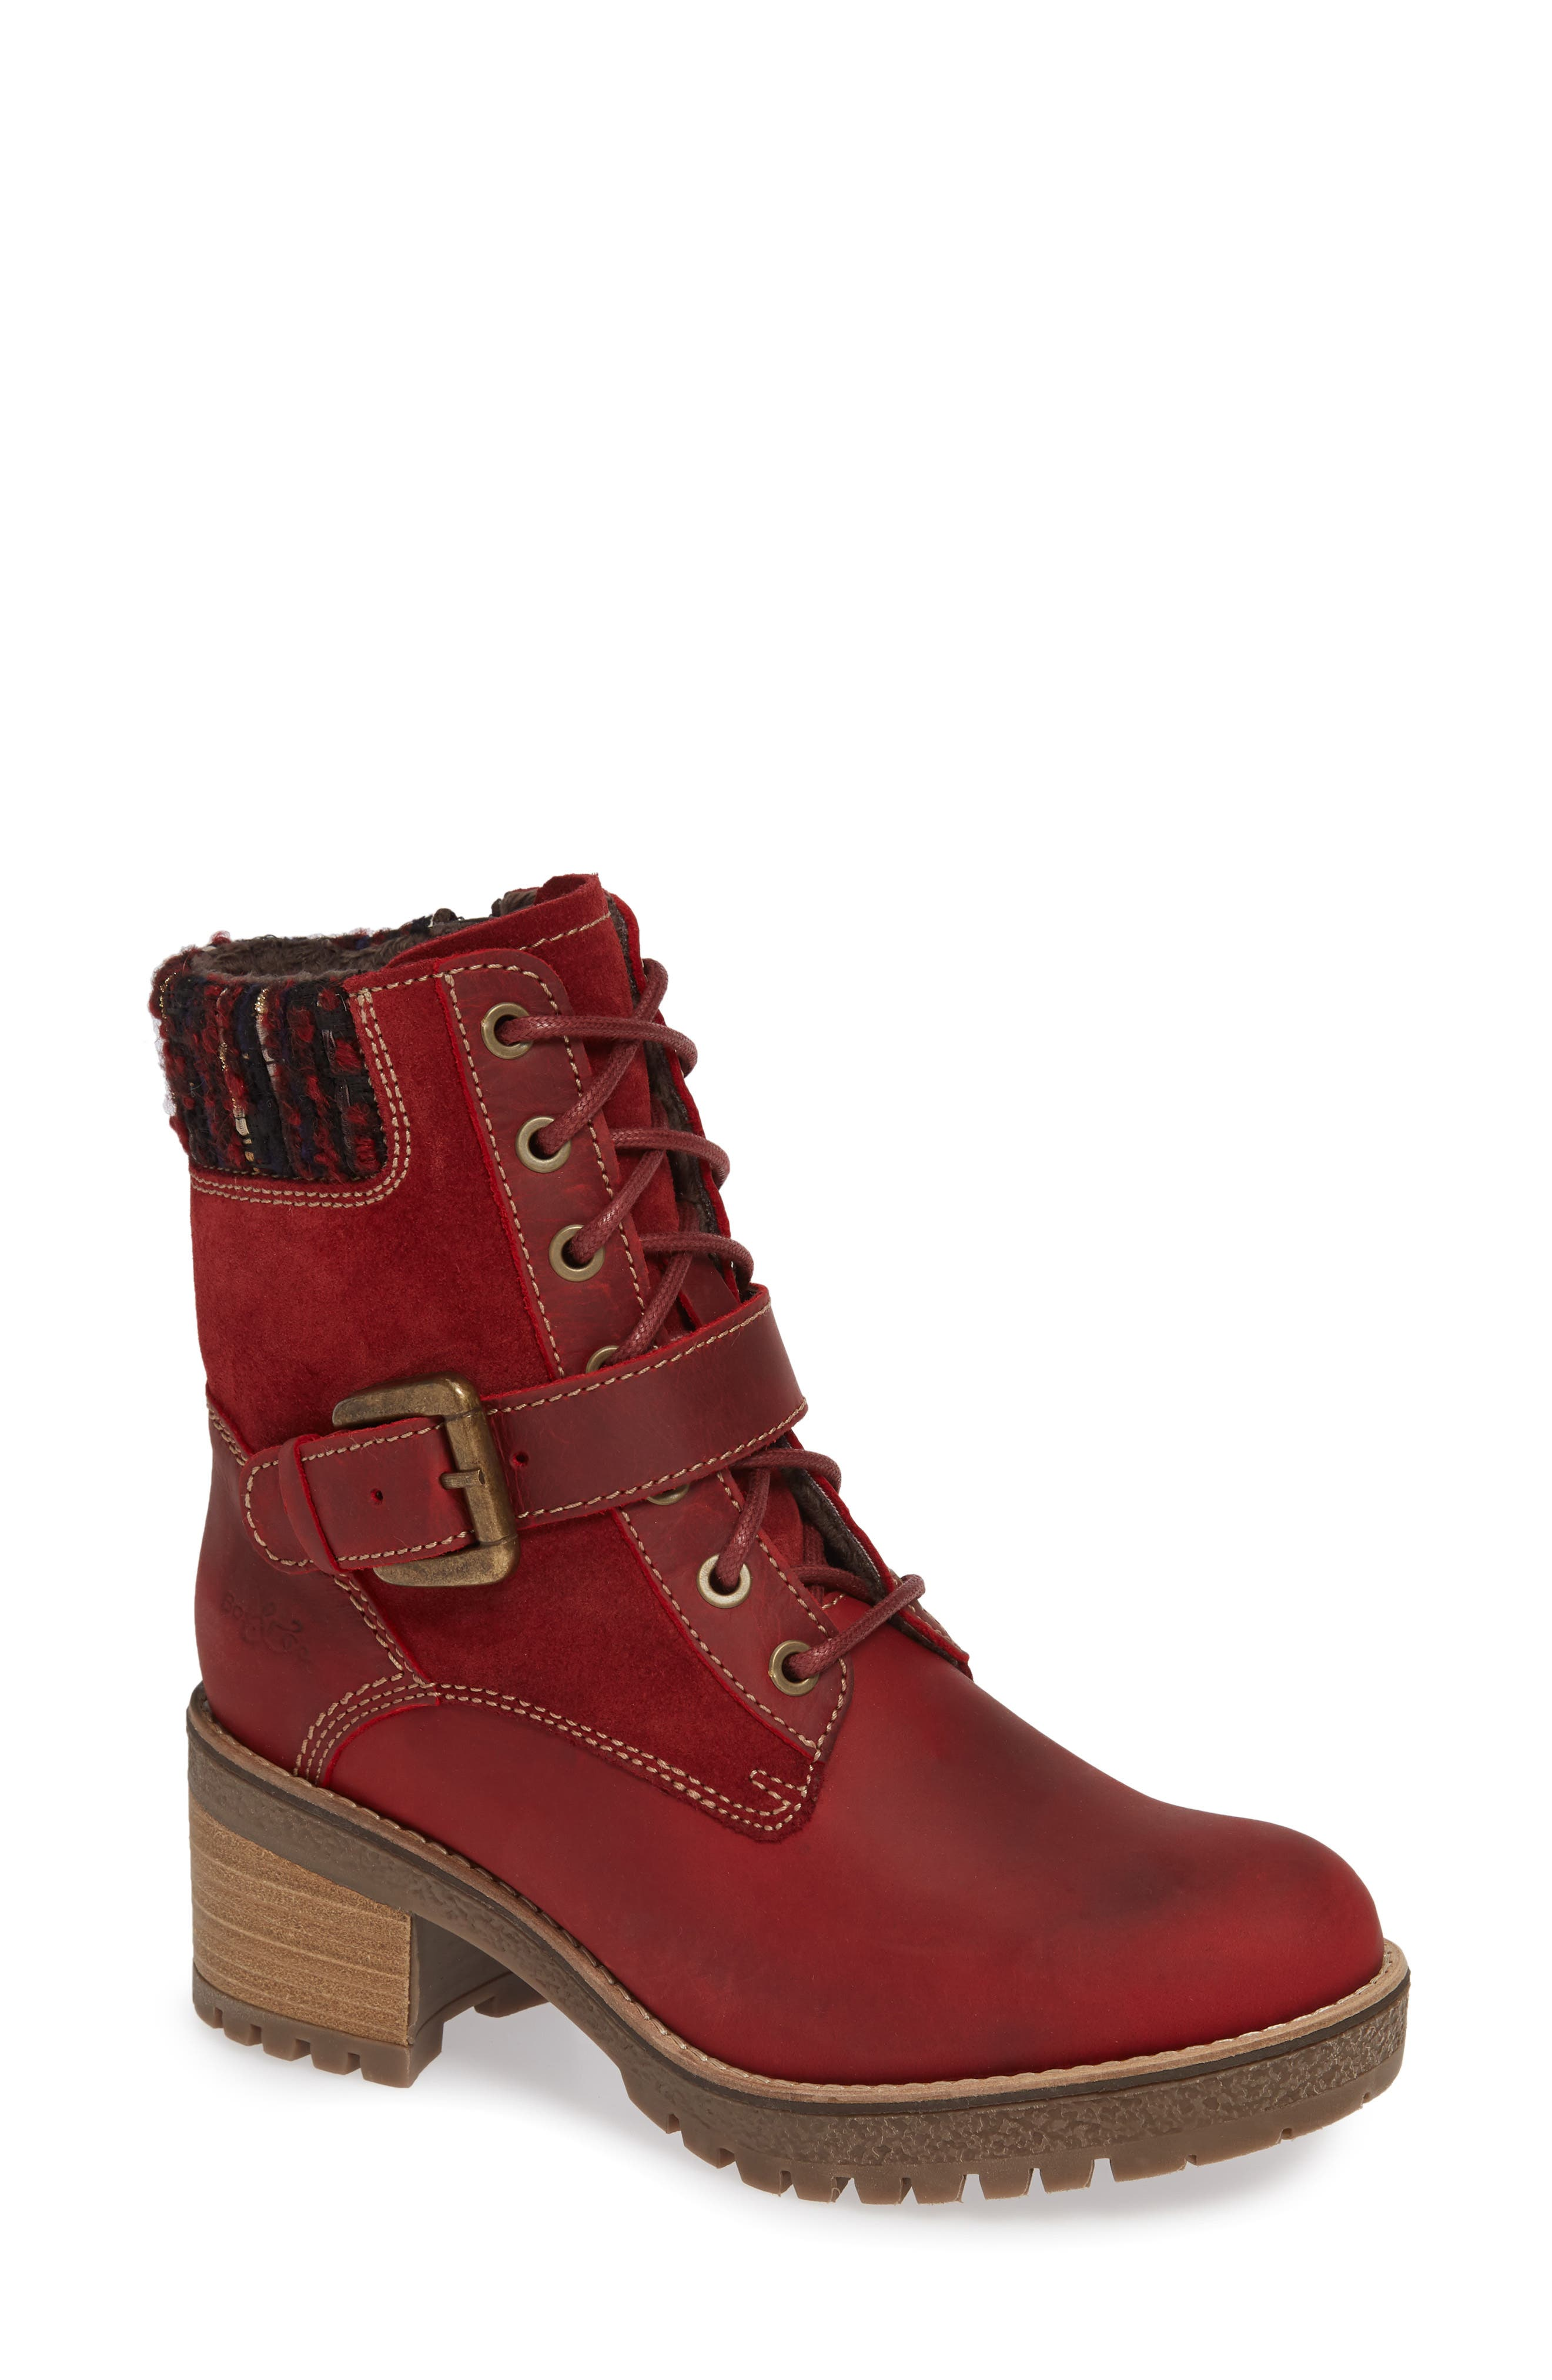 Bos. & Co. Marvel Waterproof Moto Boot, Red